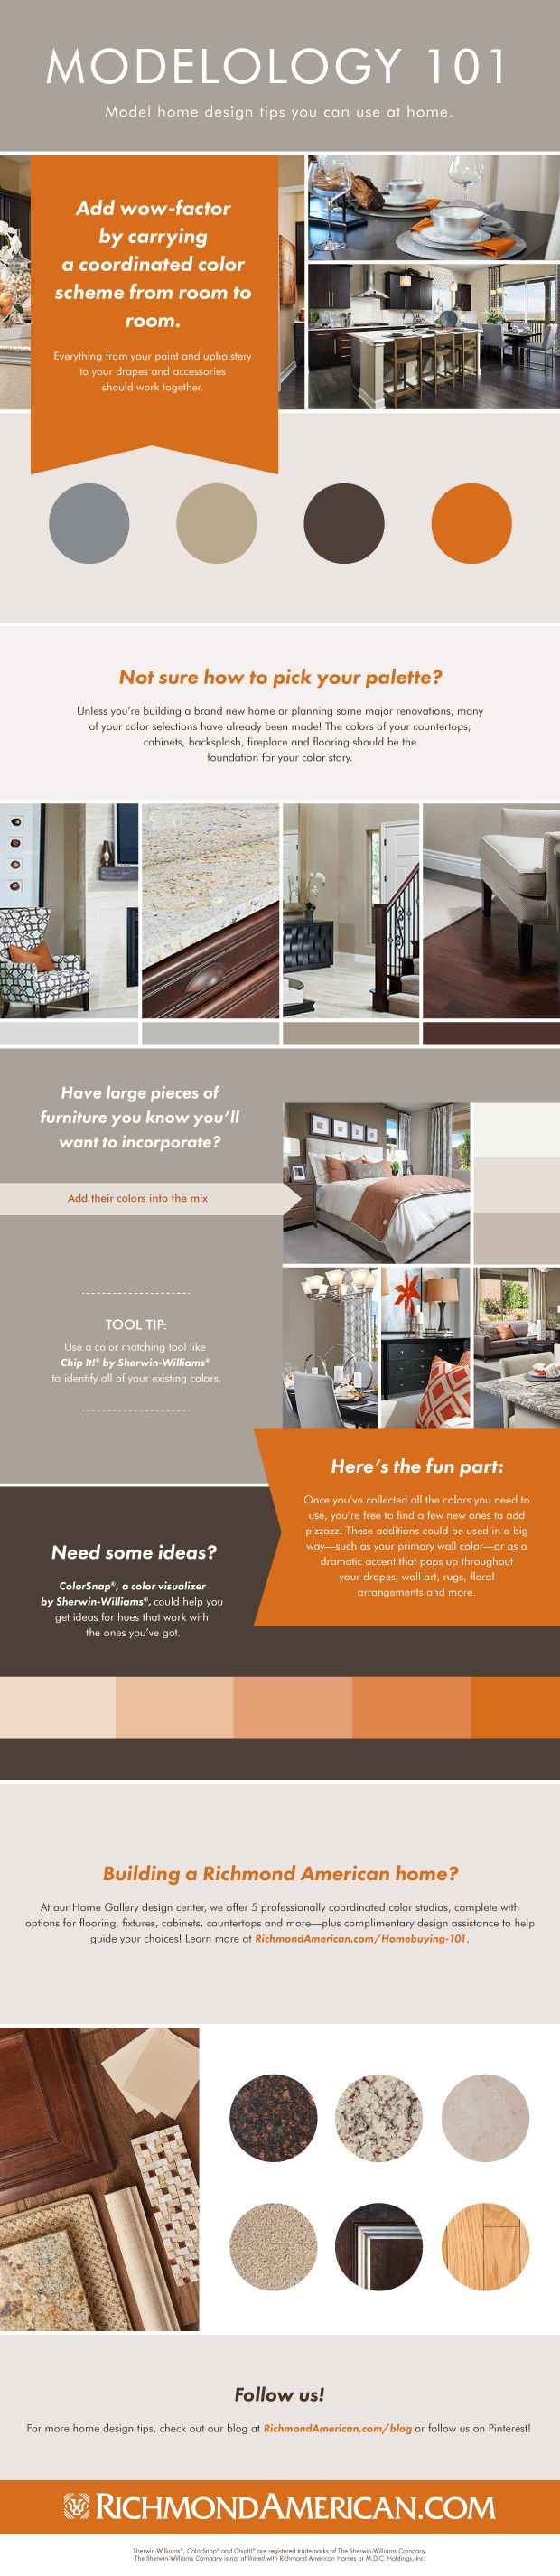 17 best ideas about richmond american homes on pinterest | great